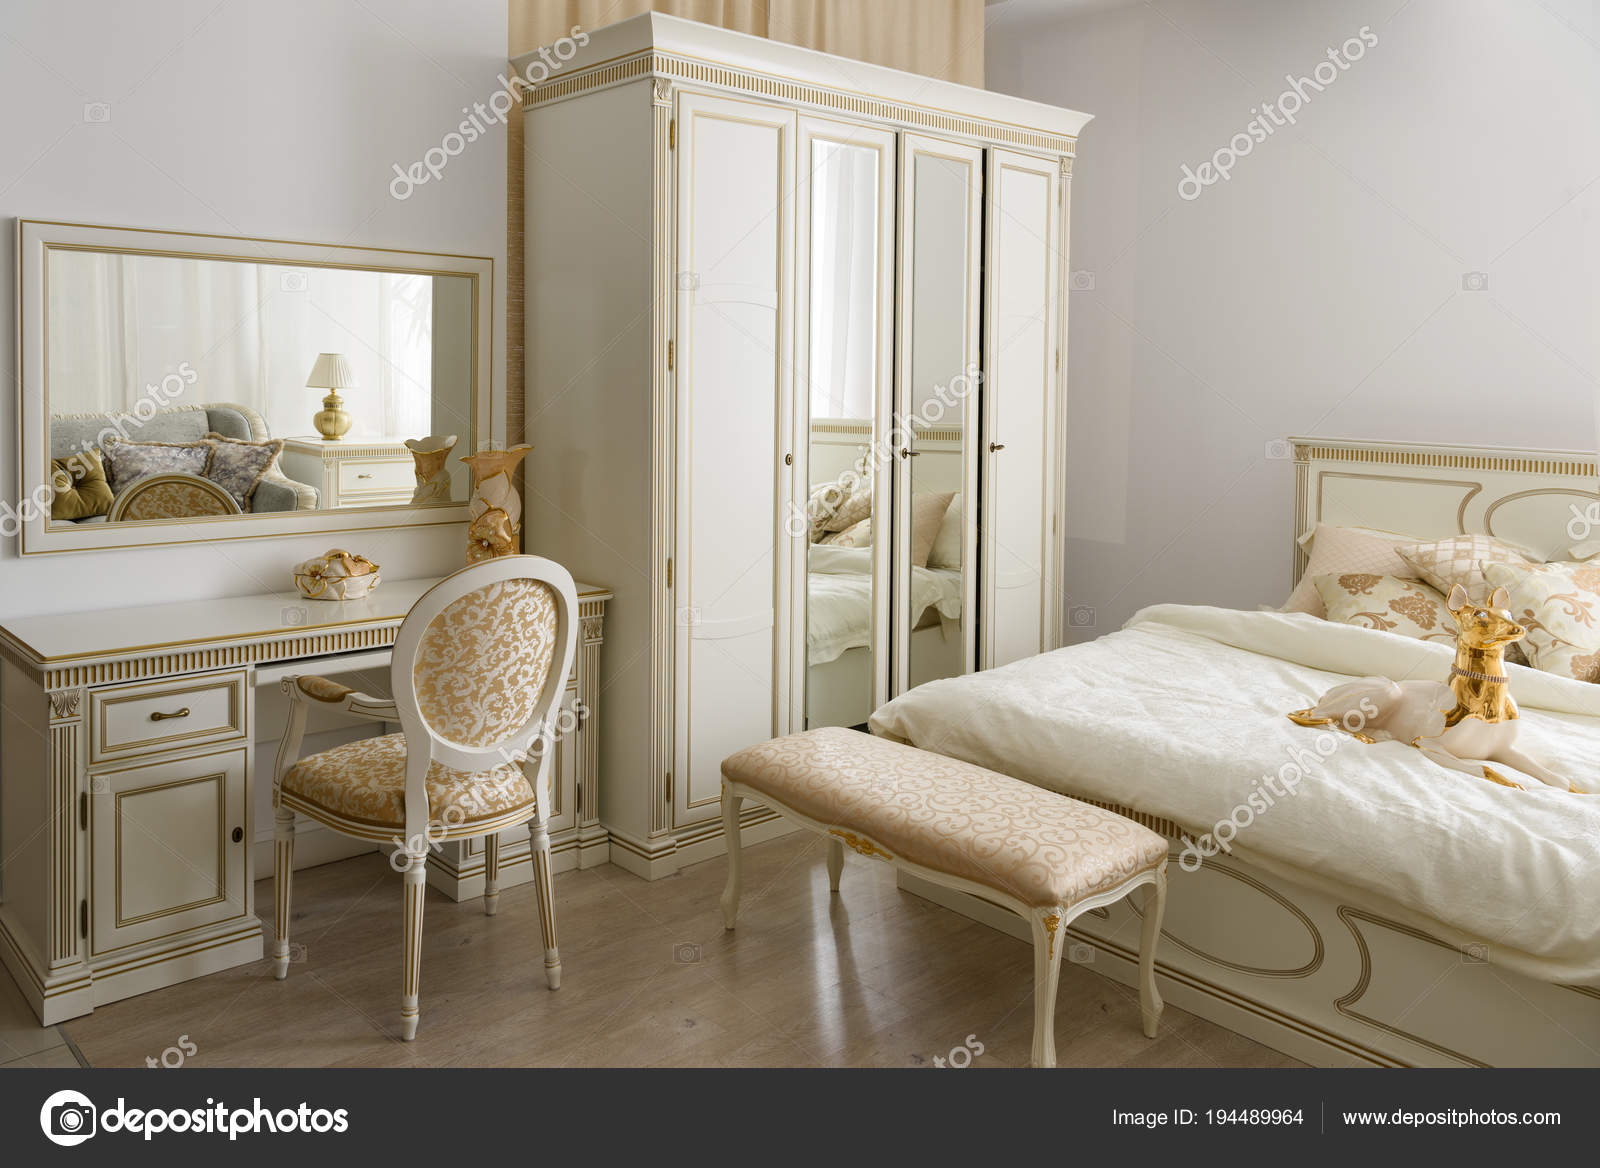 Dressing A Bed Elegant Dressing Table Bed Stylish Room Stock Photo